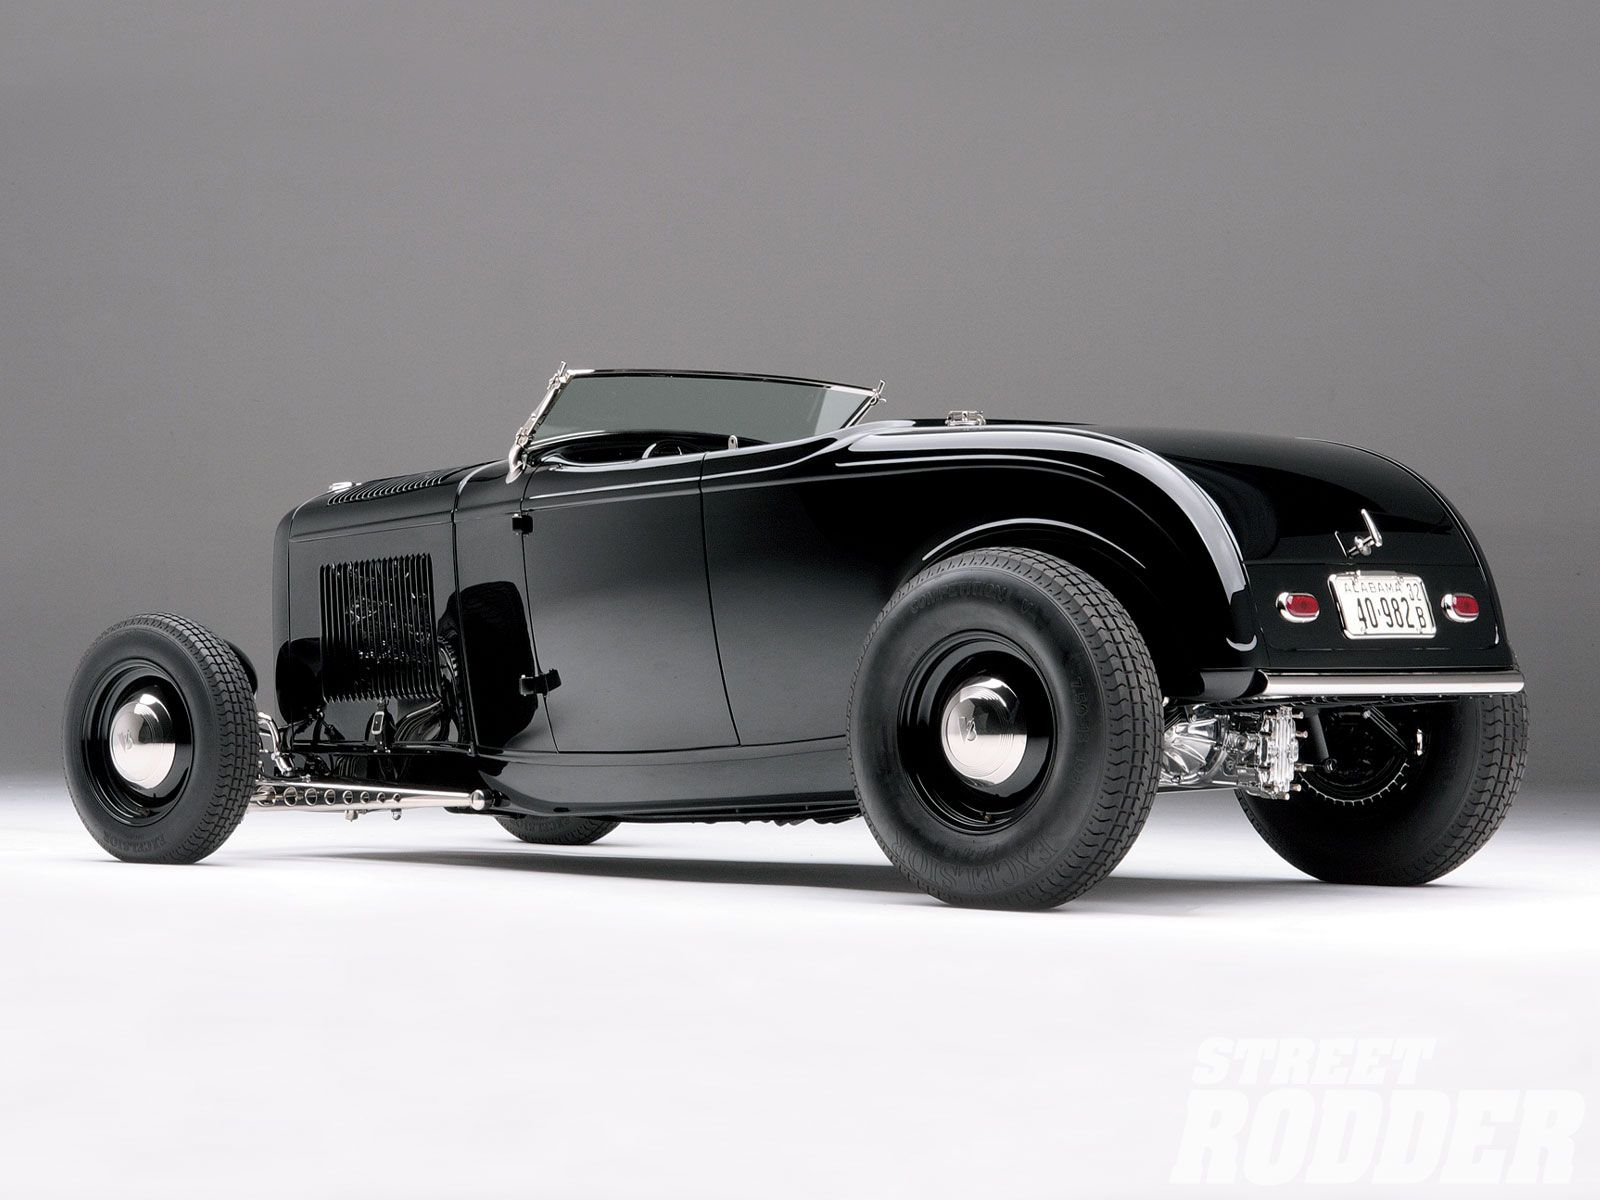 Roy halladay 1932 ford roadster stars and cars we were optimistic in how quick i could have come back